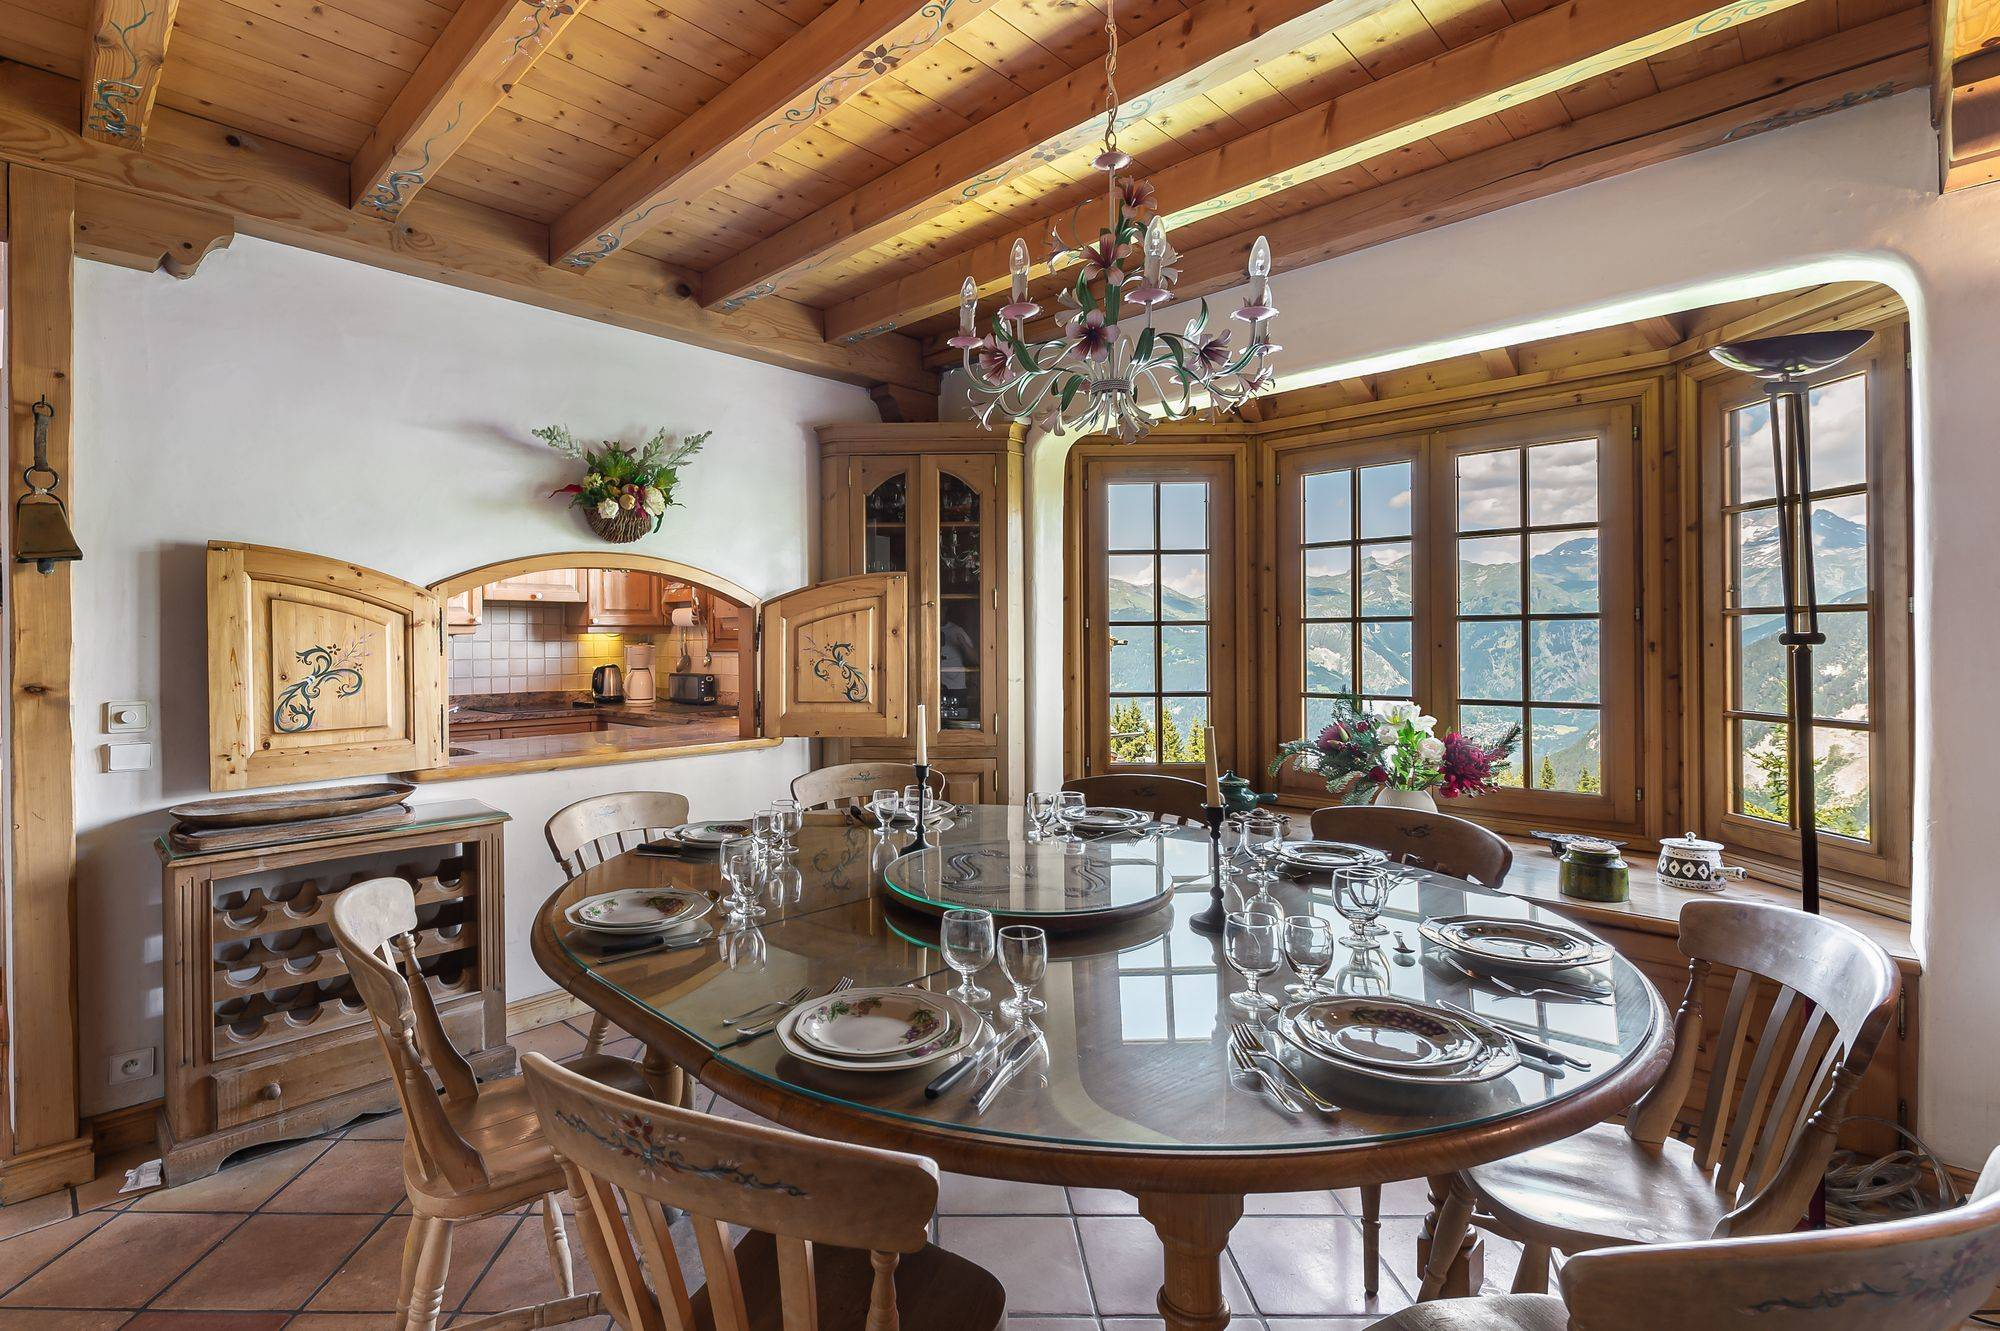 Founets Accommodation in Courchevel